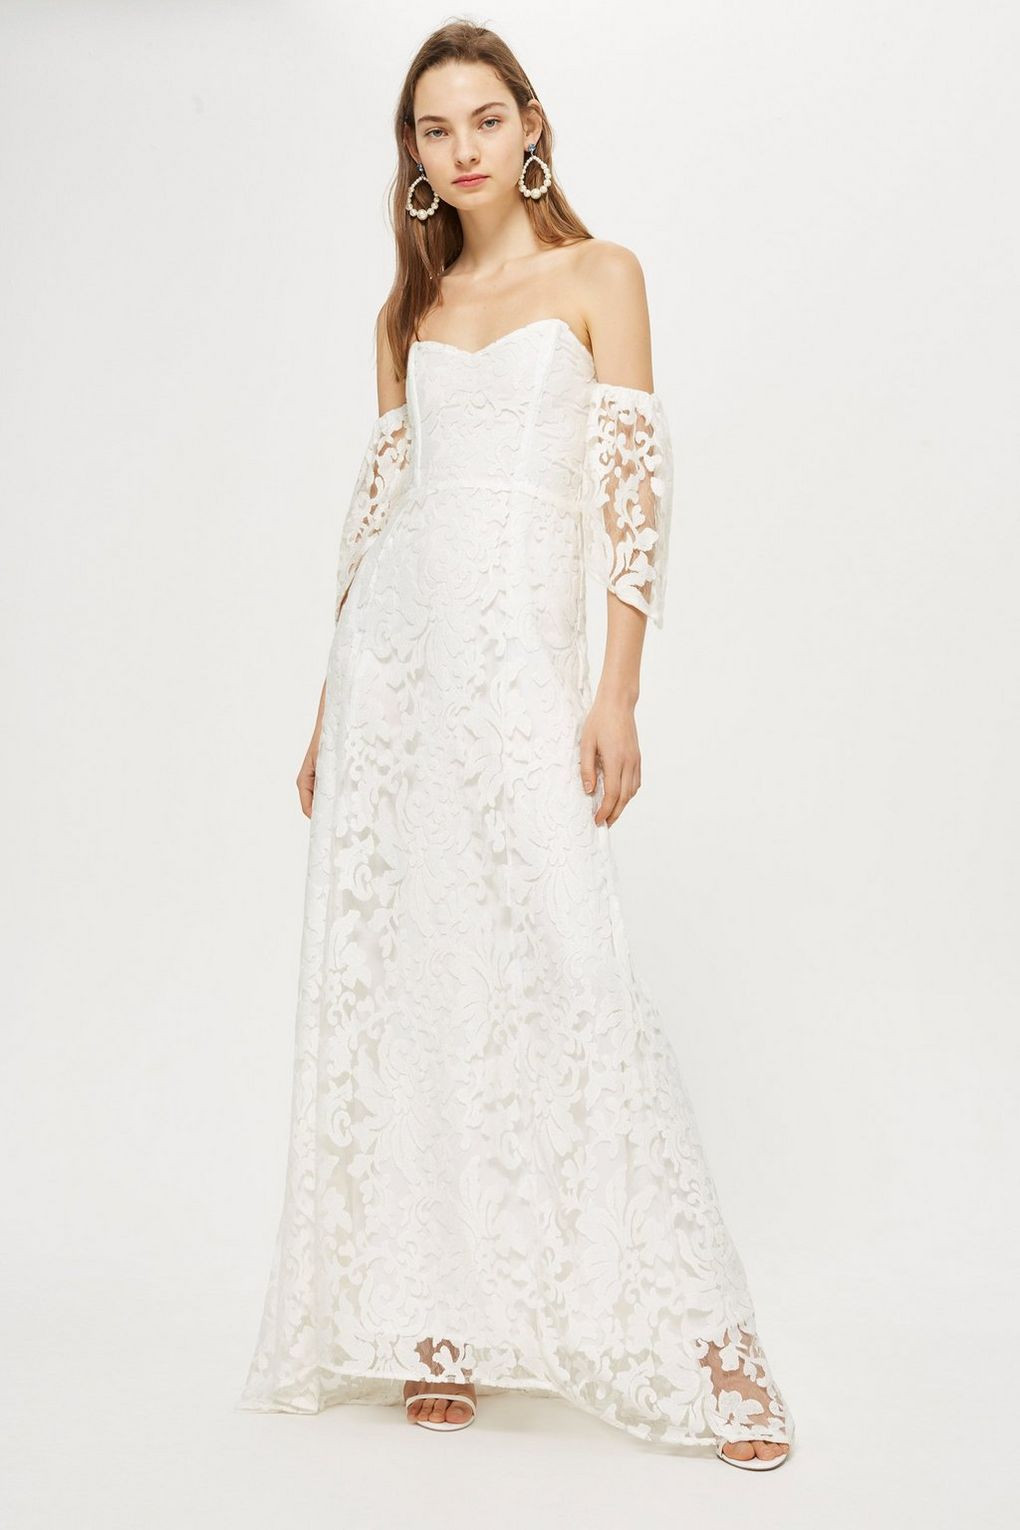 c6486884f1a With a limited edition of bridal dresses and matching lingerie and  accessories